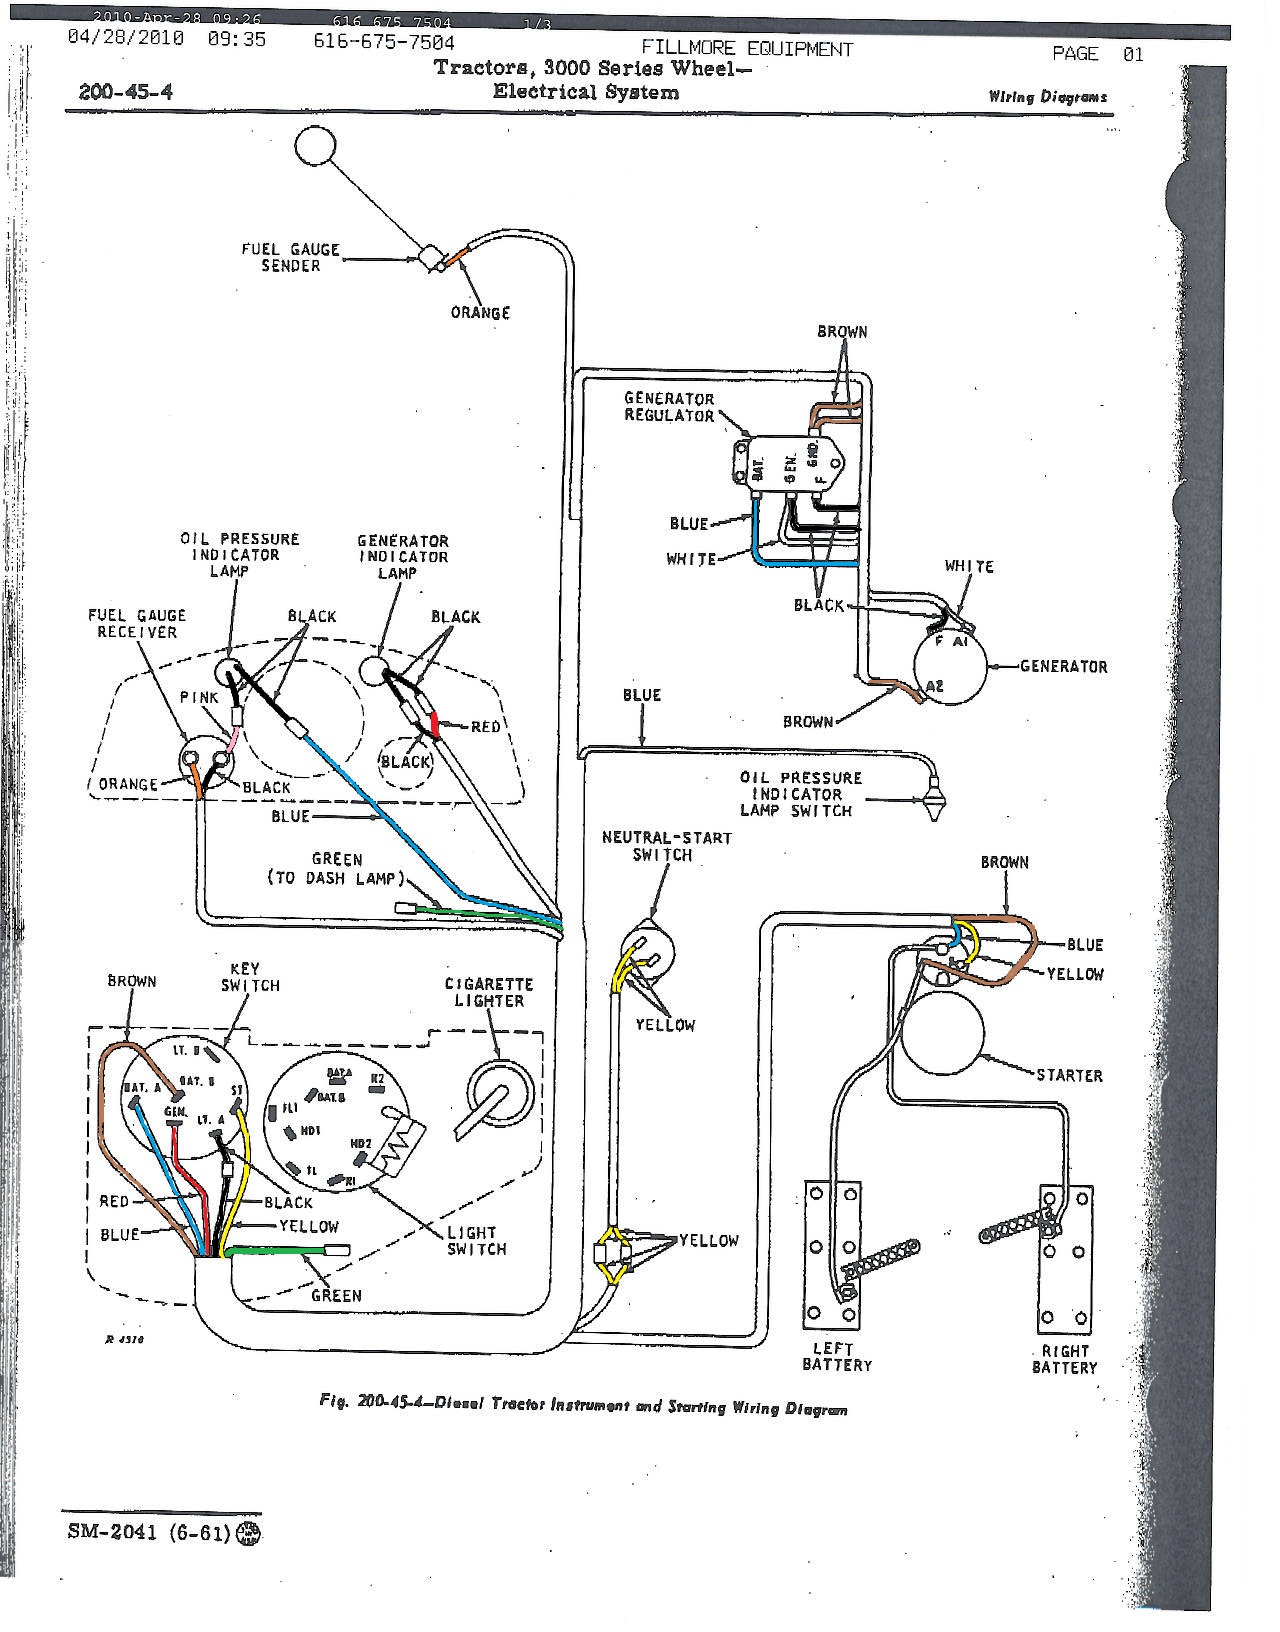 hight resolution of wiring diagram 3010 john deere tractor